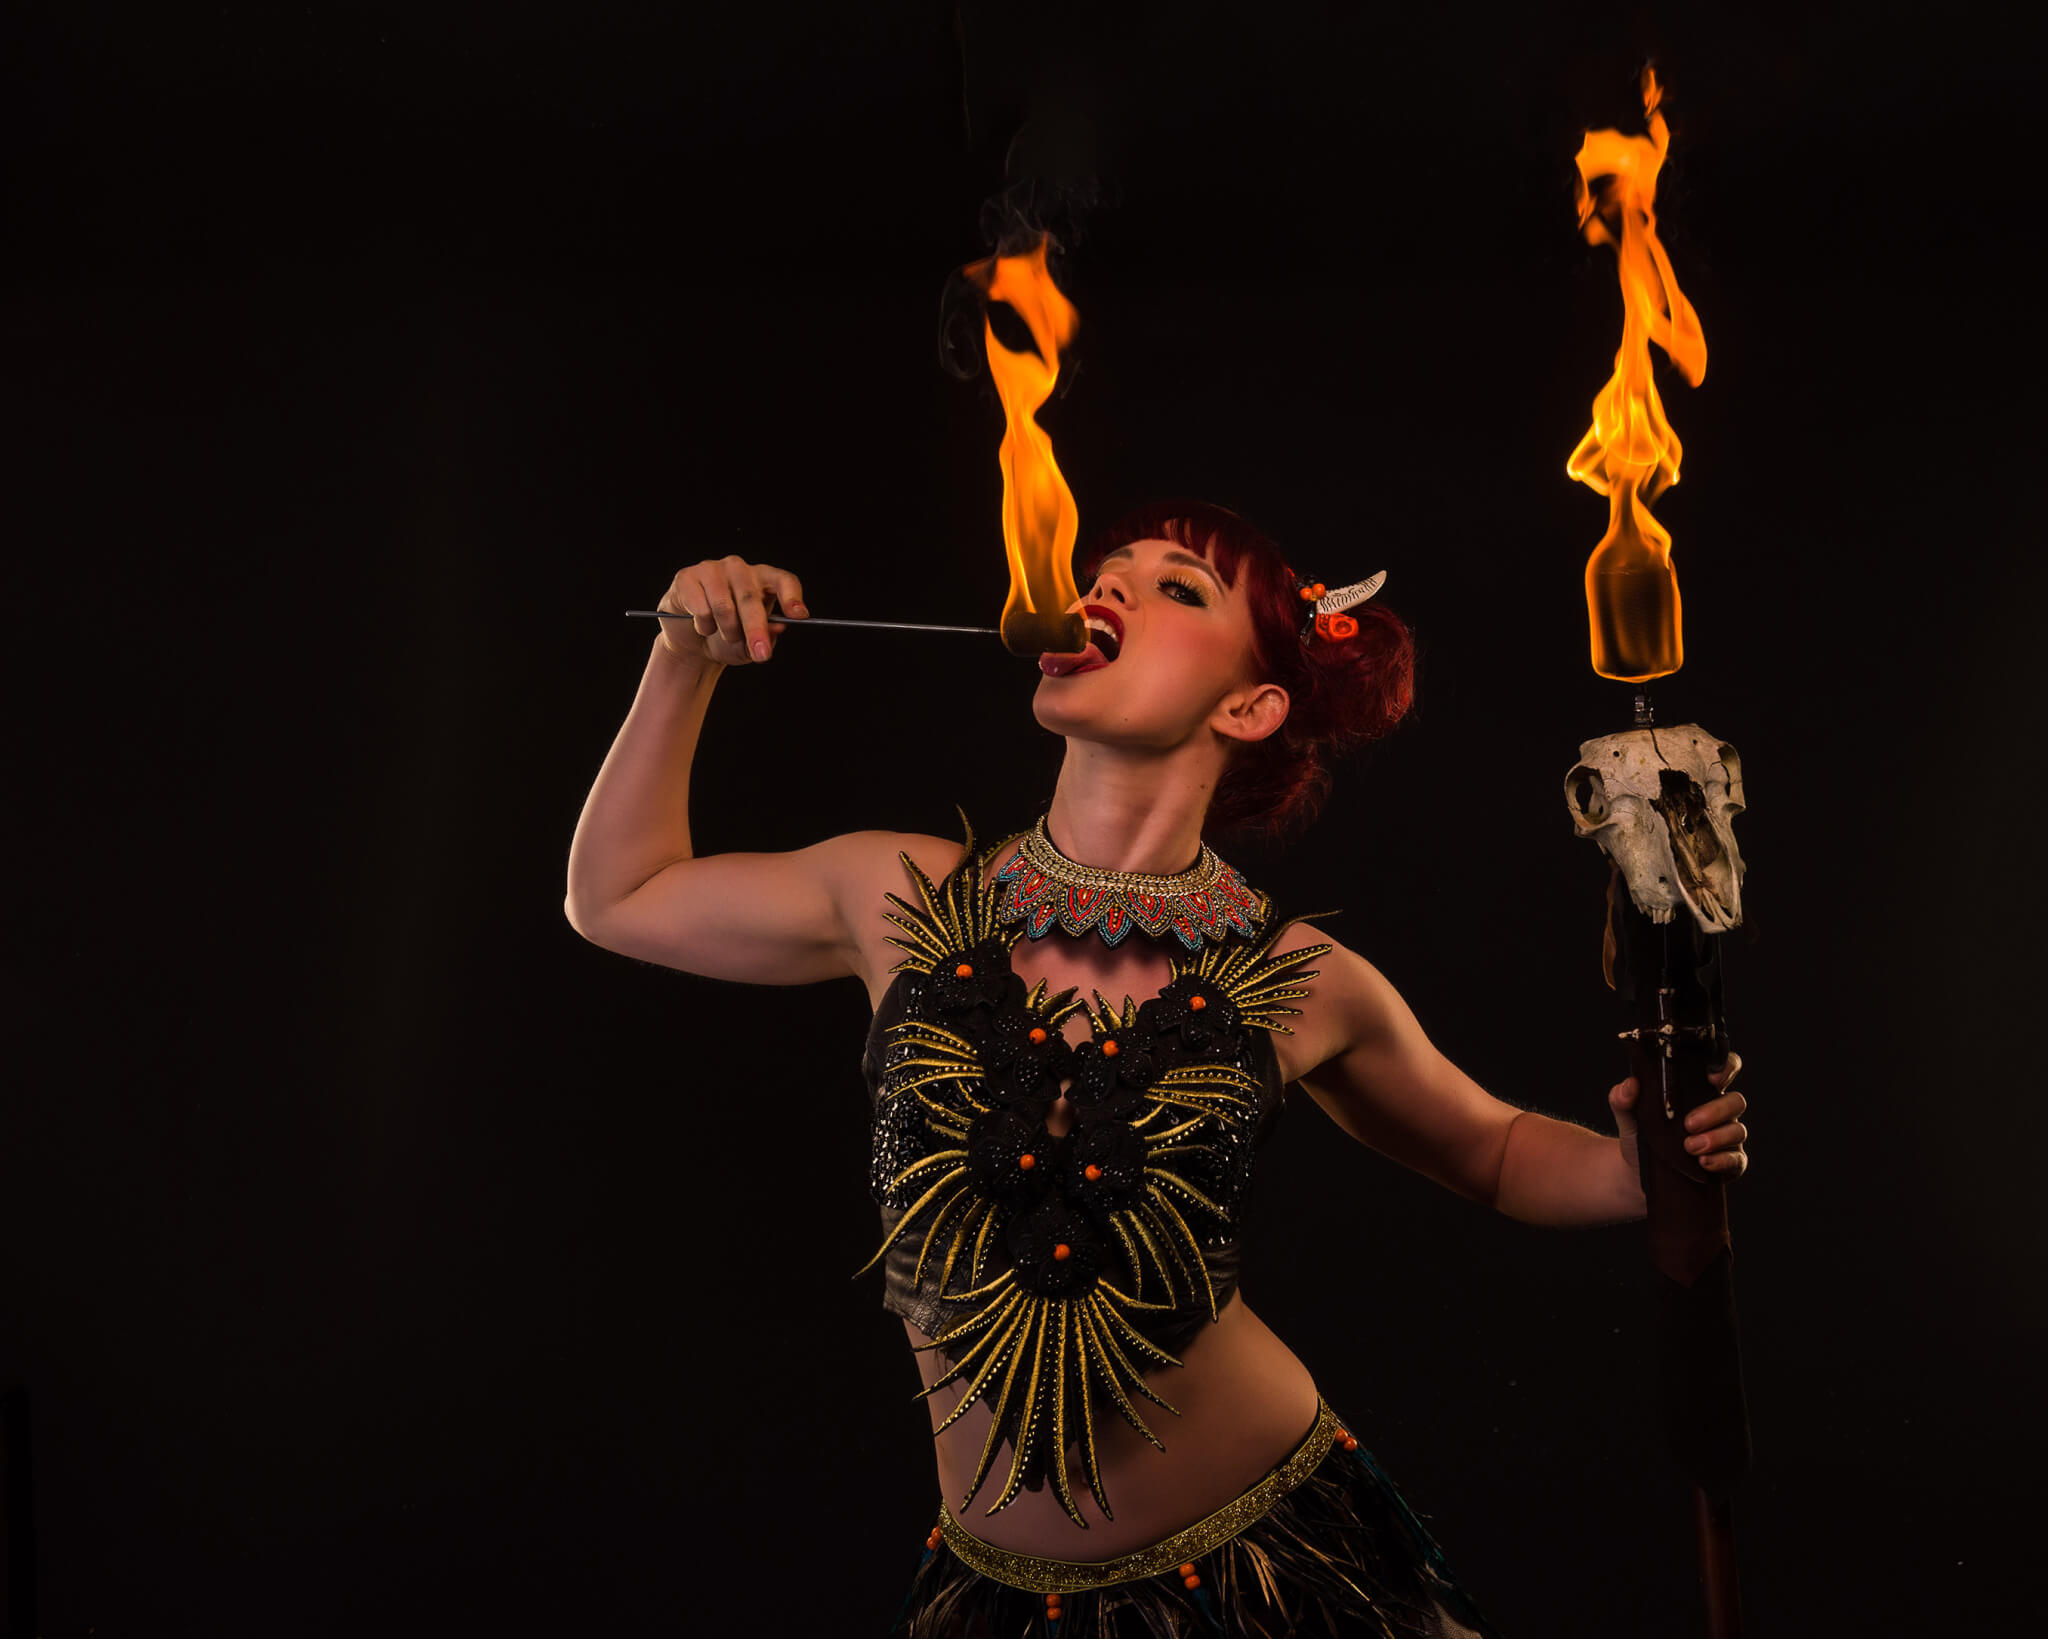 Aleisha | Aerialist & Fire Dancer